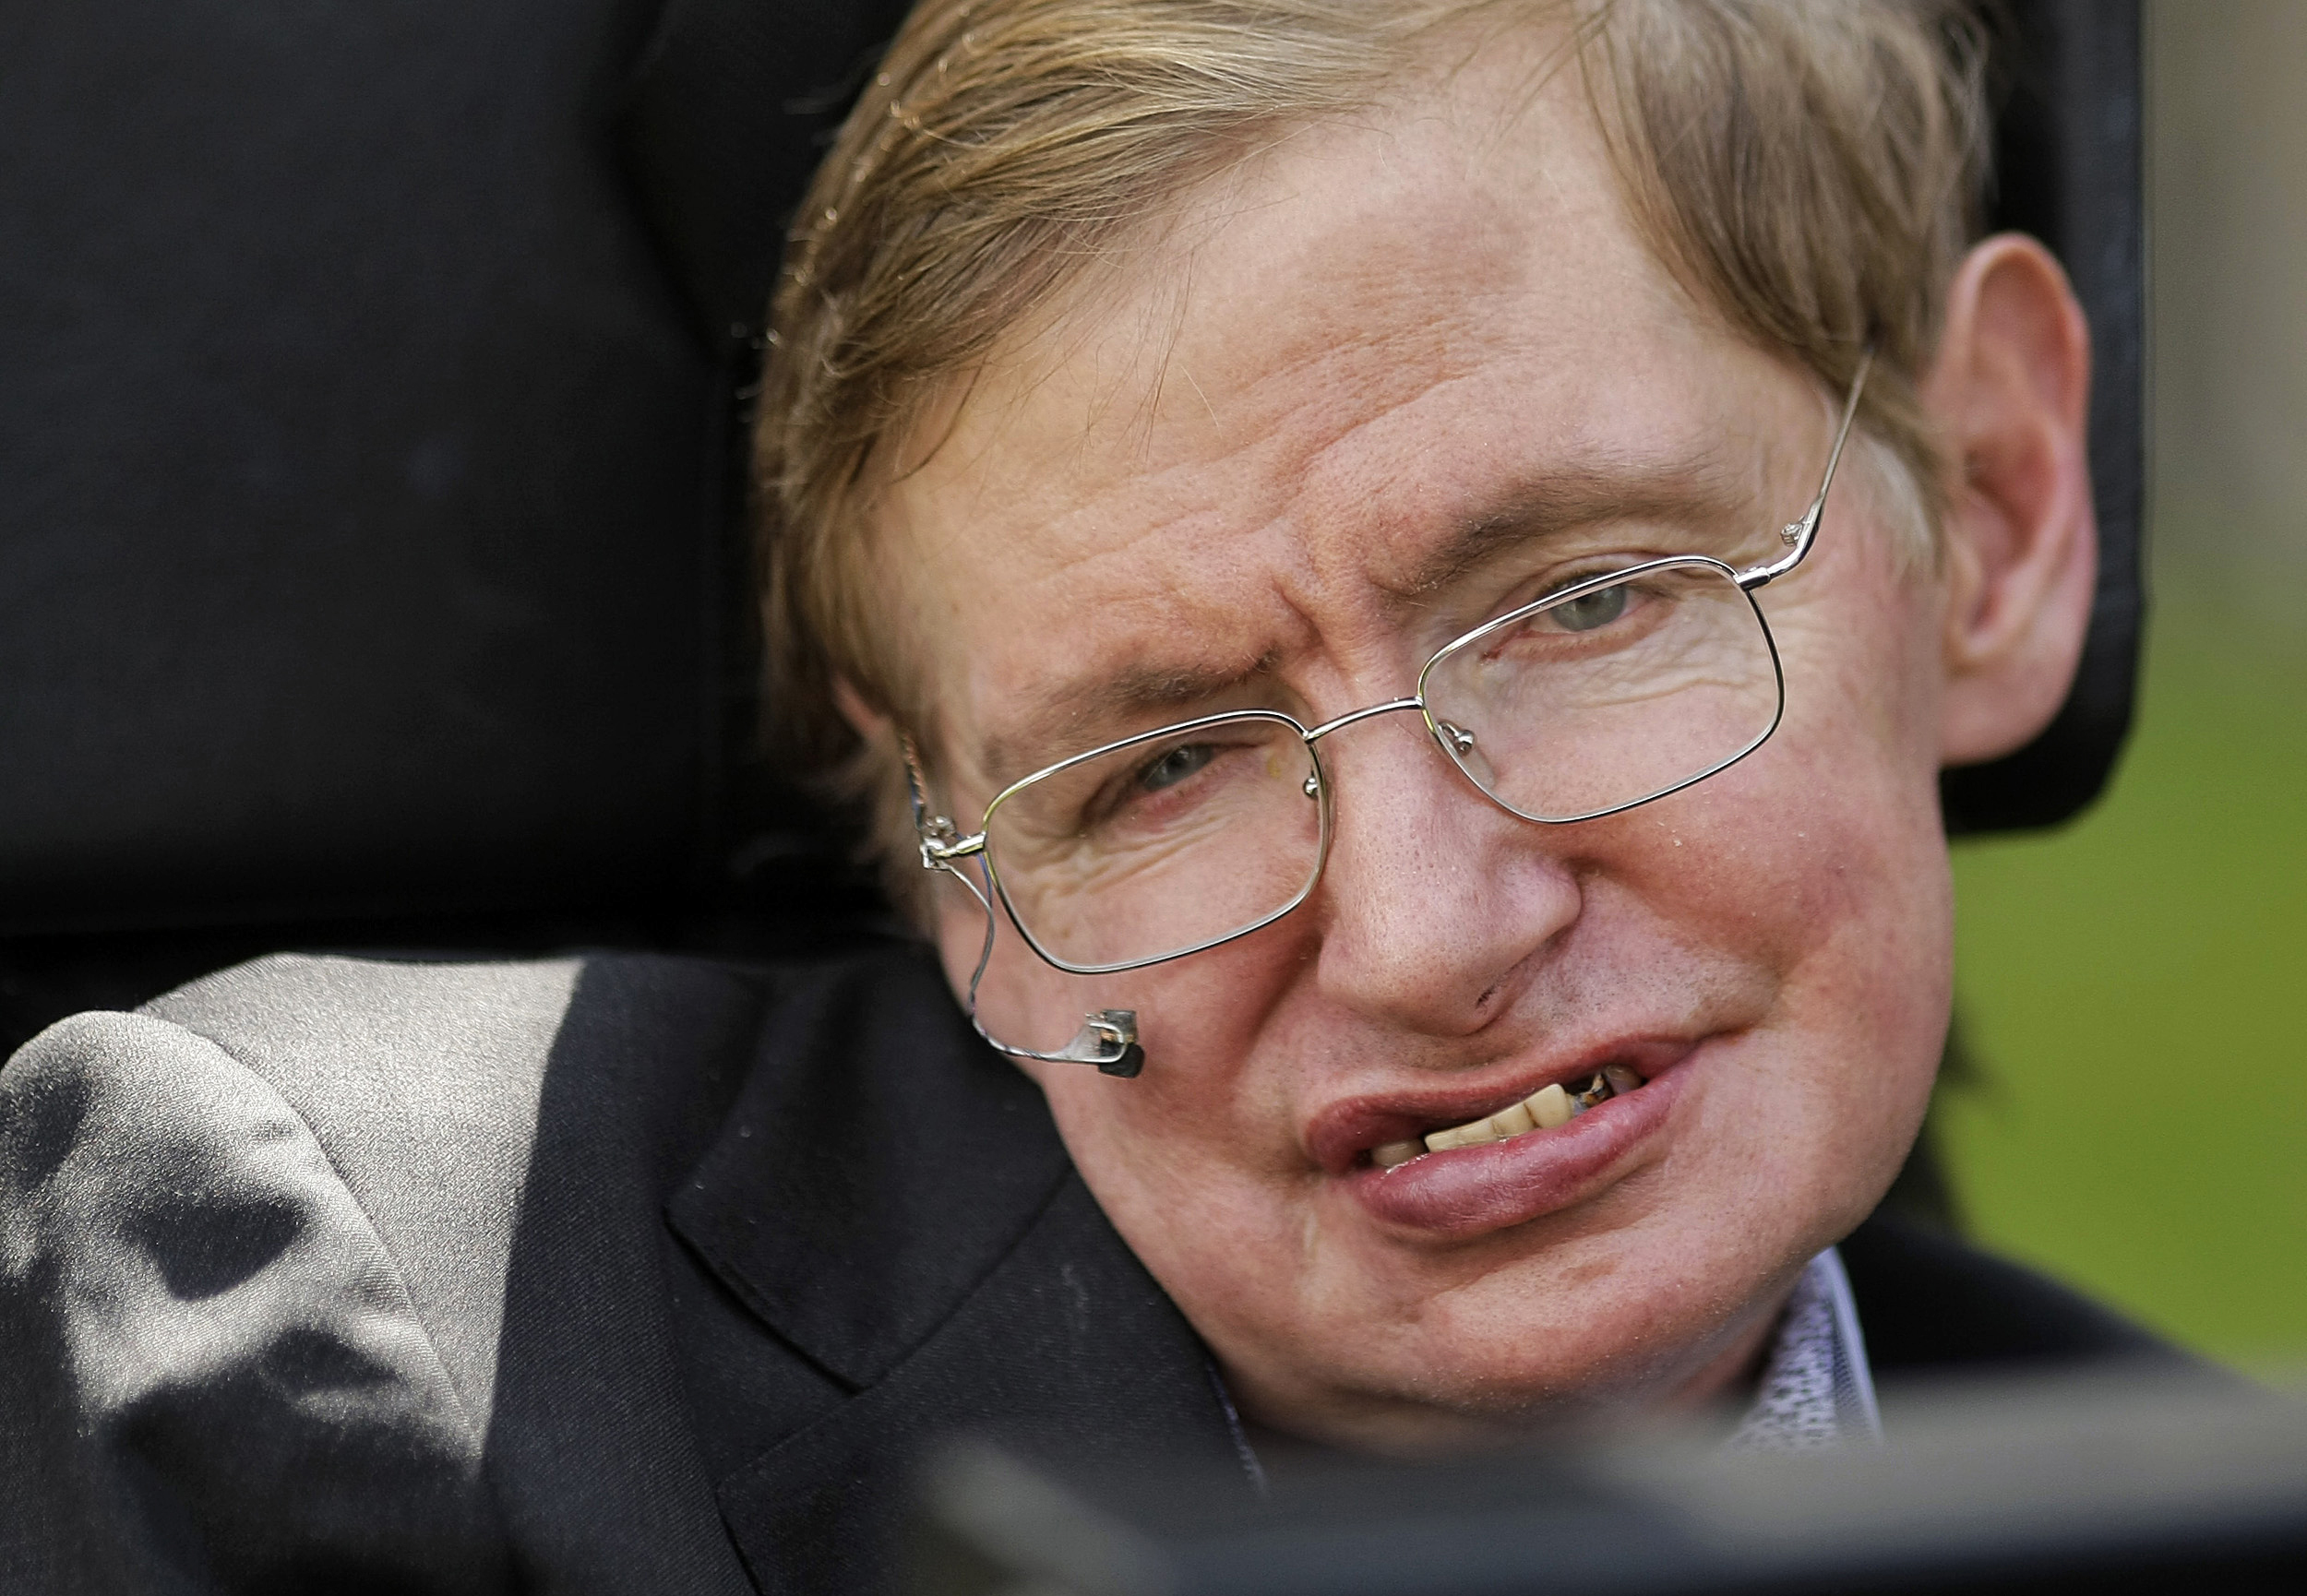 Stephen Hawking warned that 'superhumans', AI could bring humanity to an end